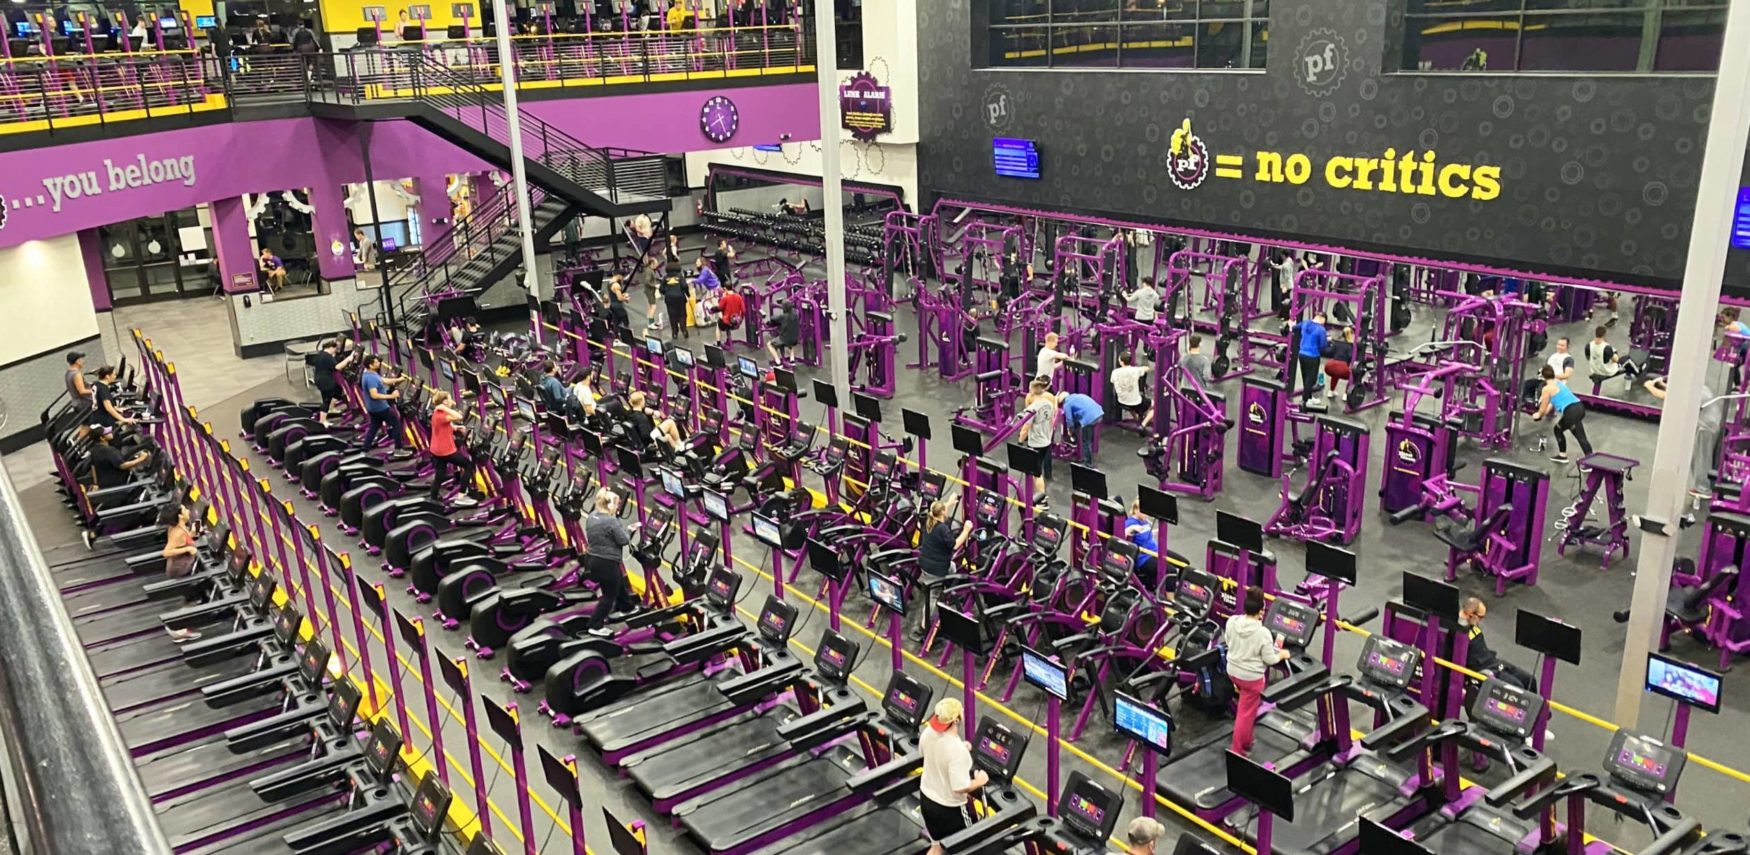 Fitness is part of Connecticut's COVID solution